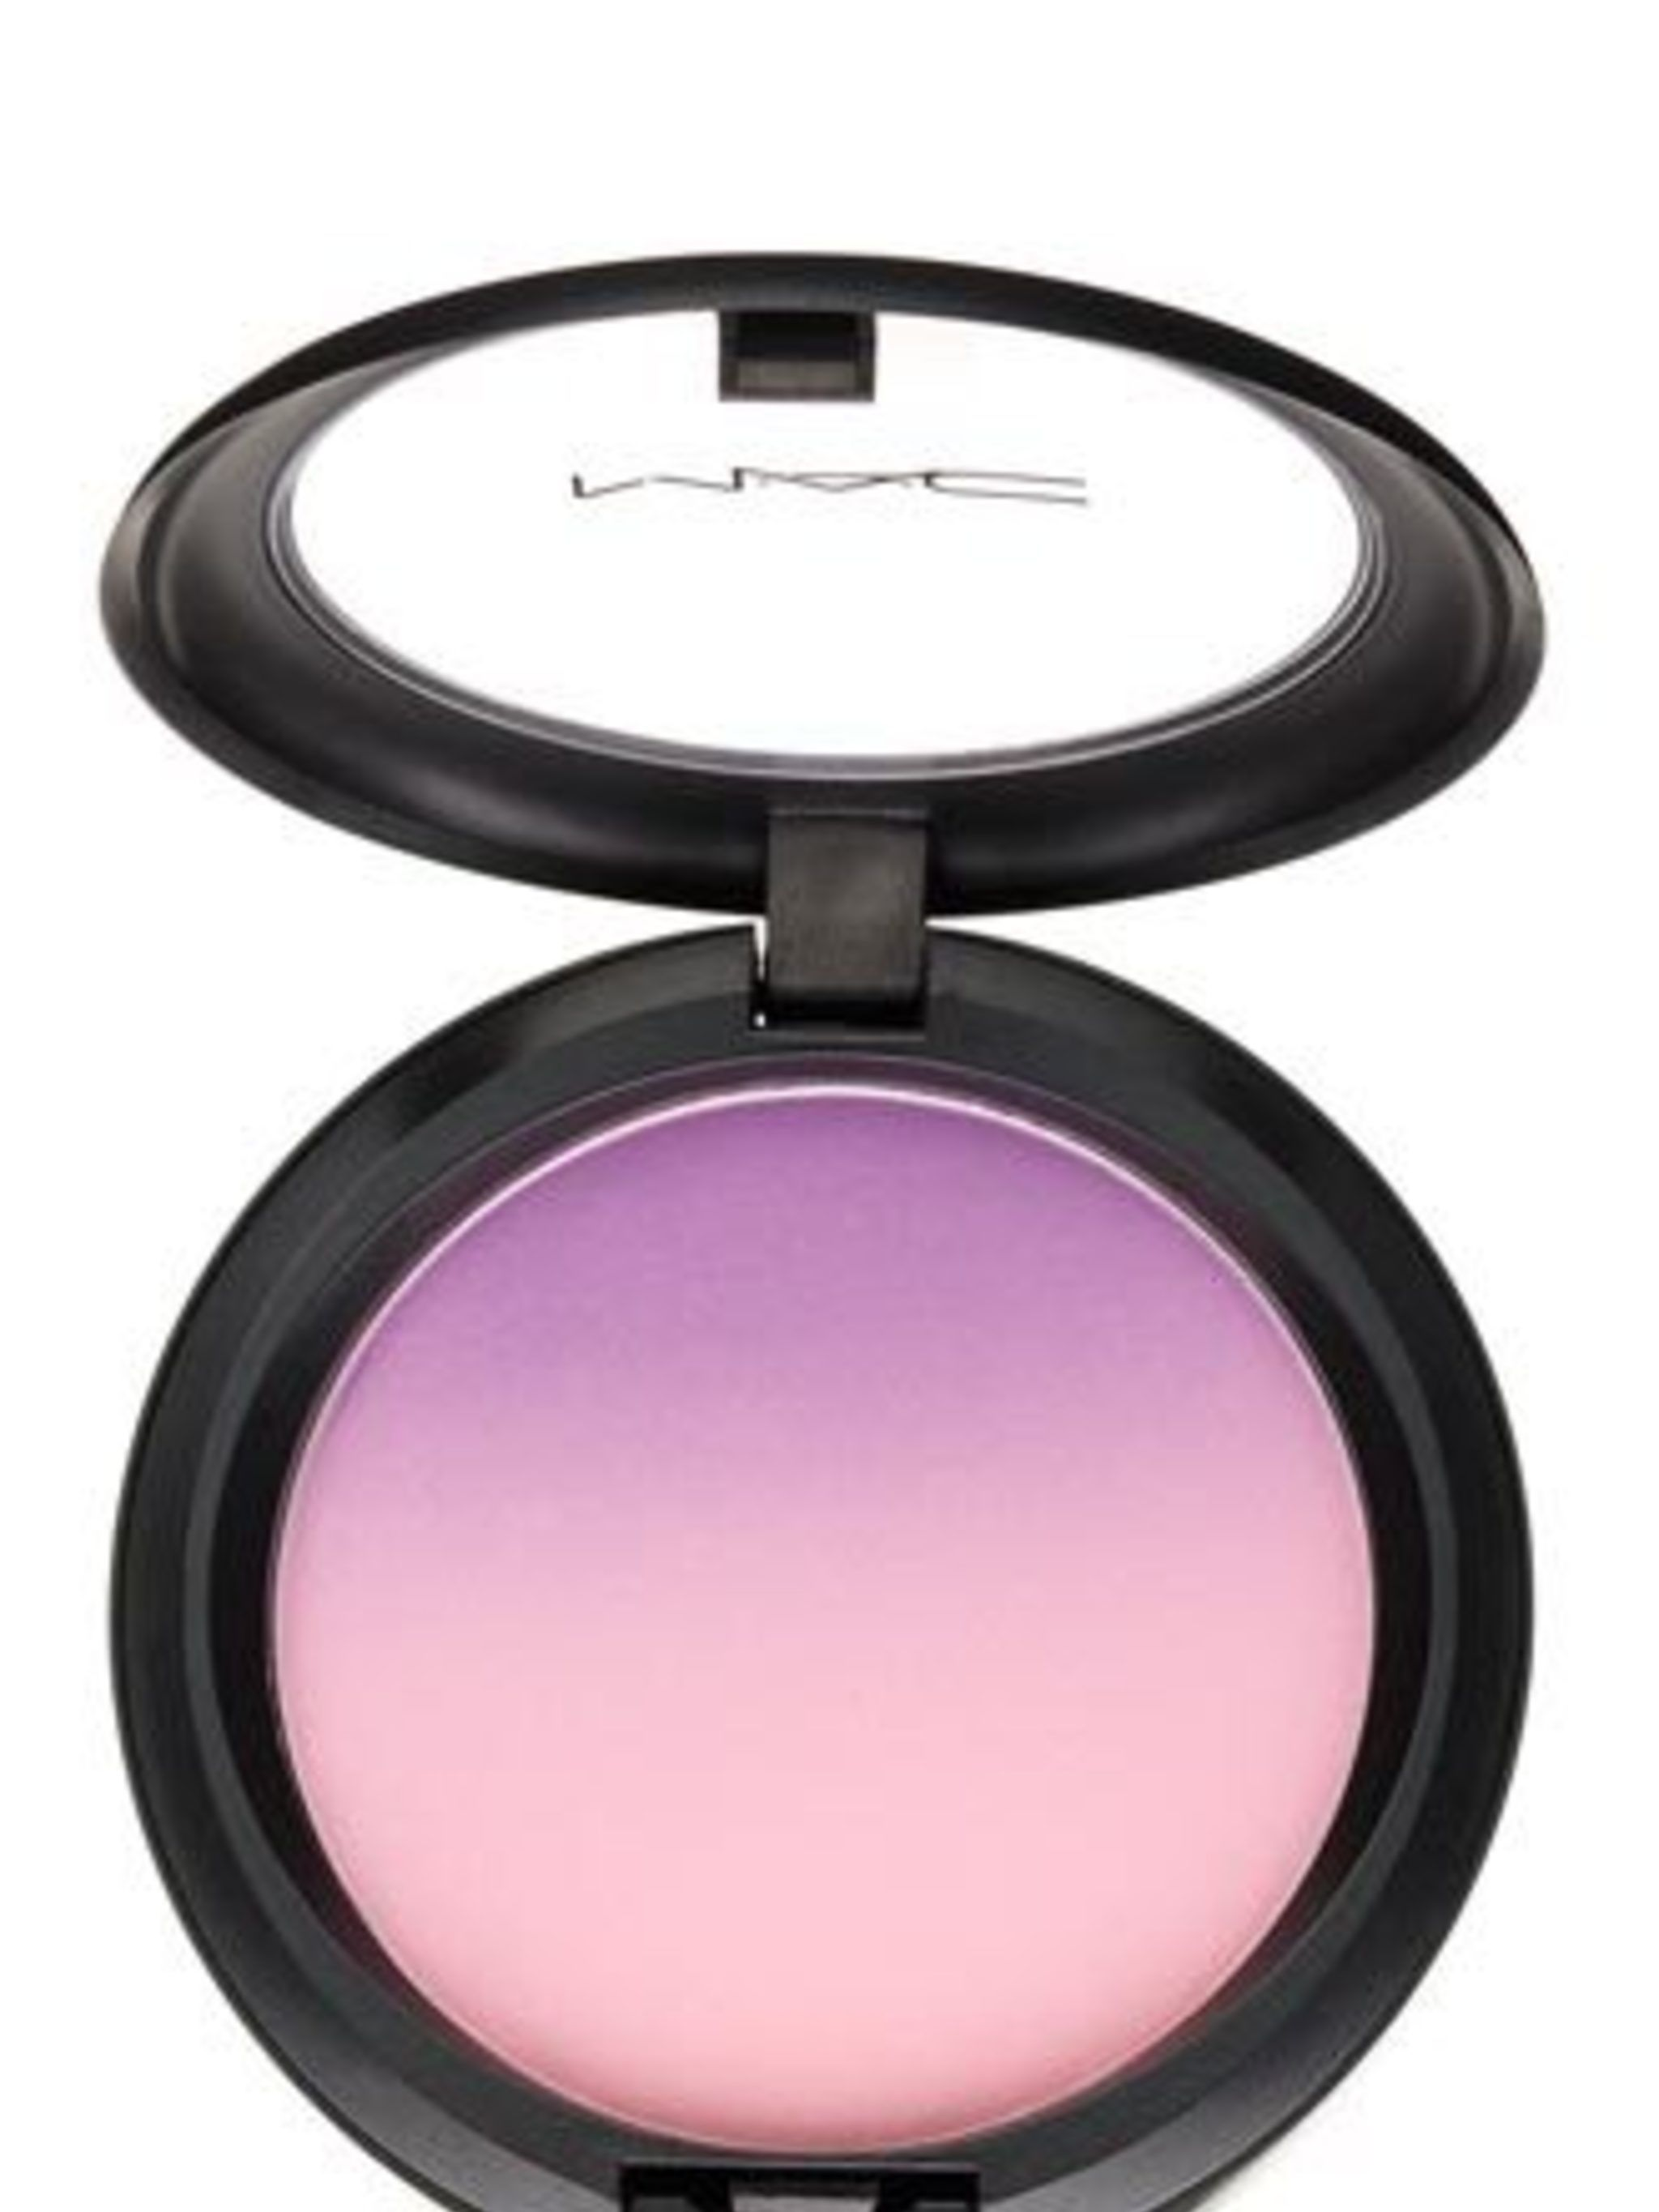 "<p>Georgia Collins, Beauty WriterLilac is set to be spring's hot new shade so I'll be sweeping this soft pastel shade from my cheeks to my temples for a delicate flush.</p><p>Blush Ombre in Azalea Blossom, £19.50, by <a href=""http://www.maccosmetics.co.uk"